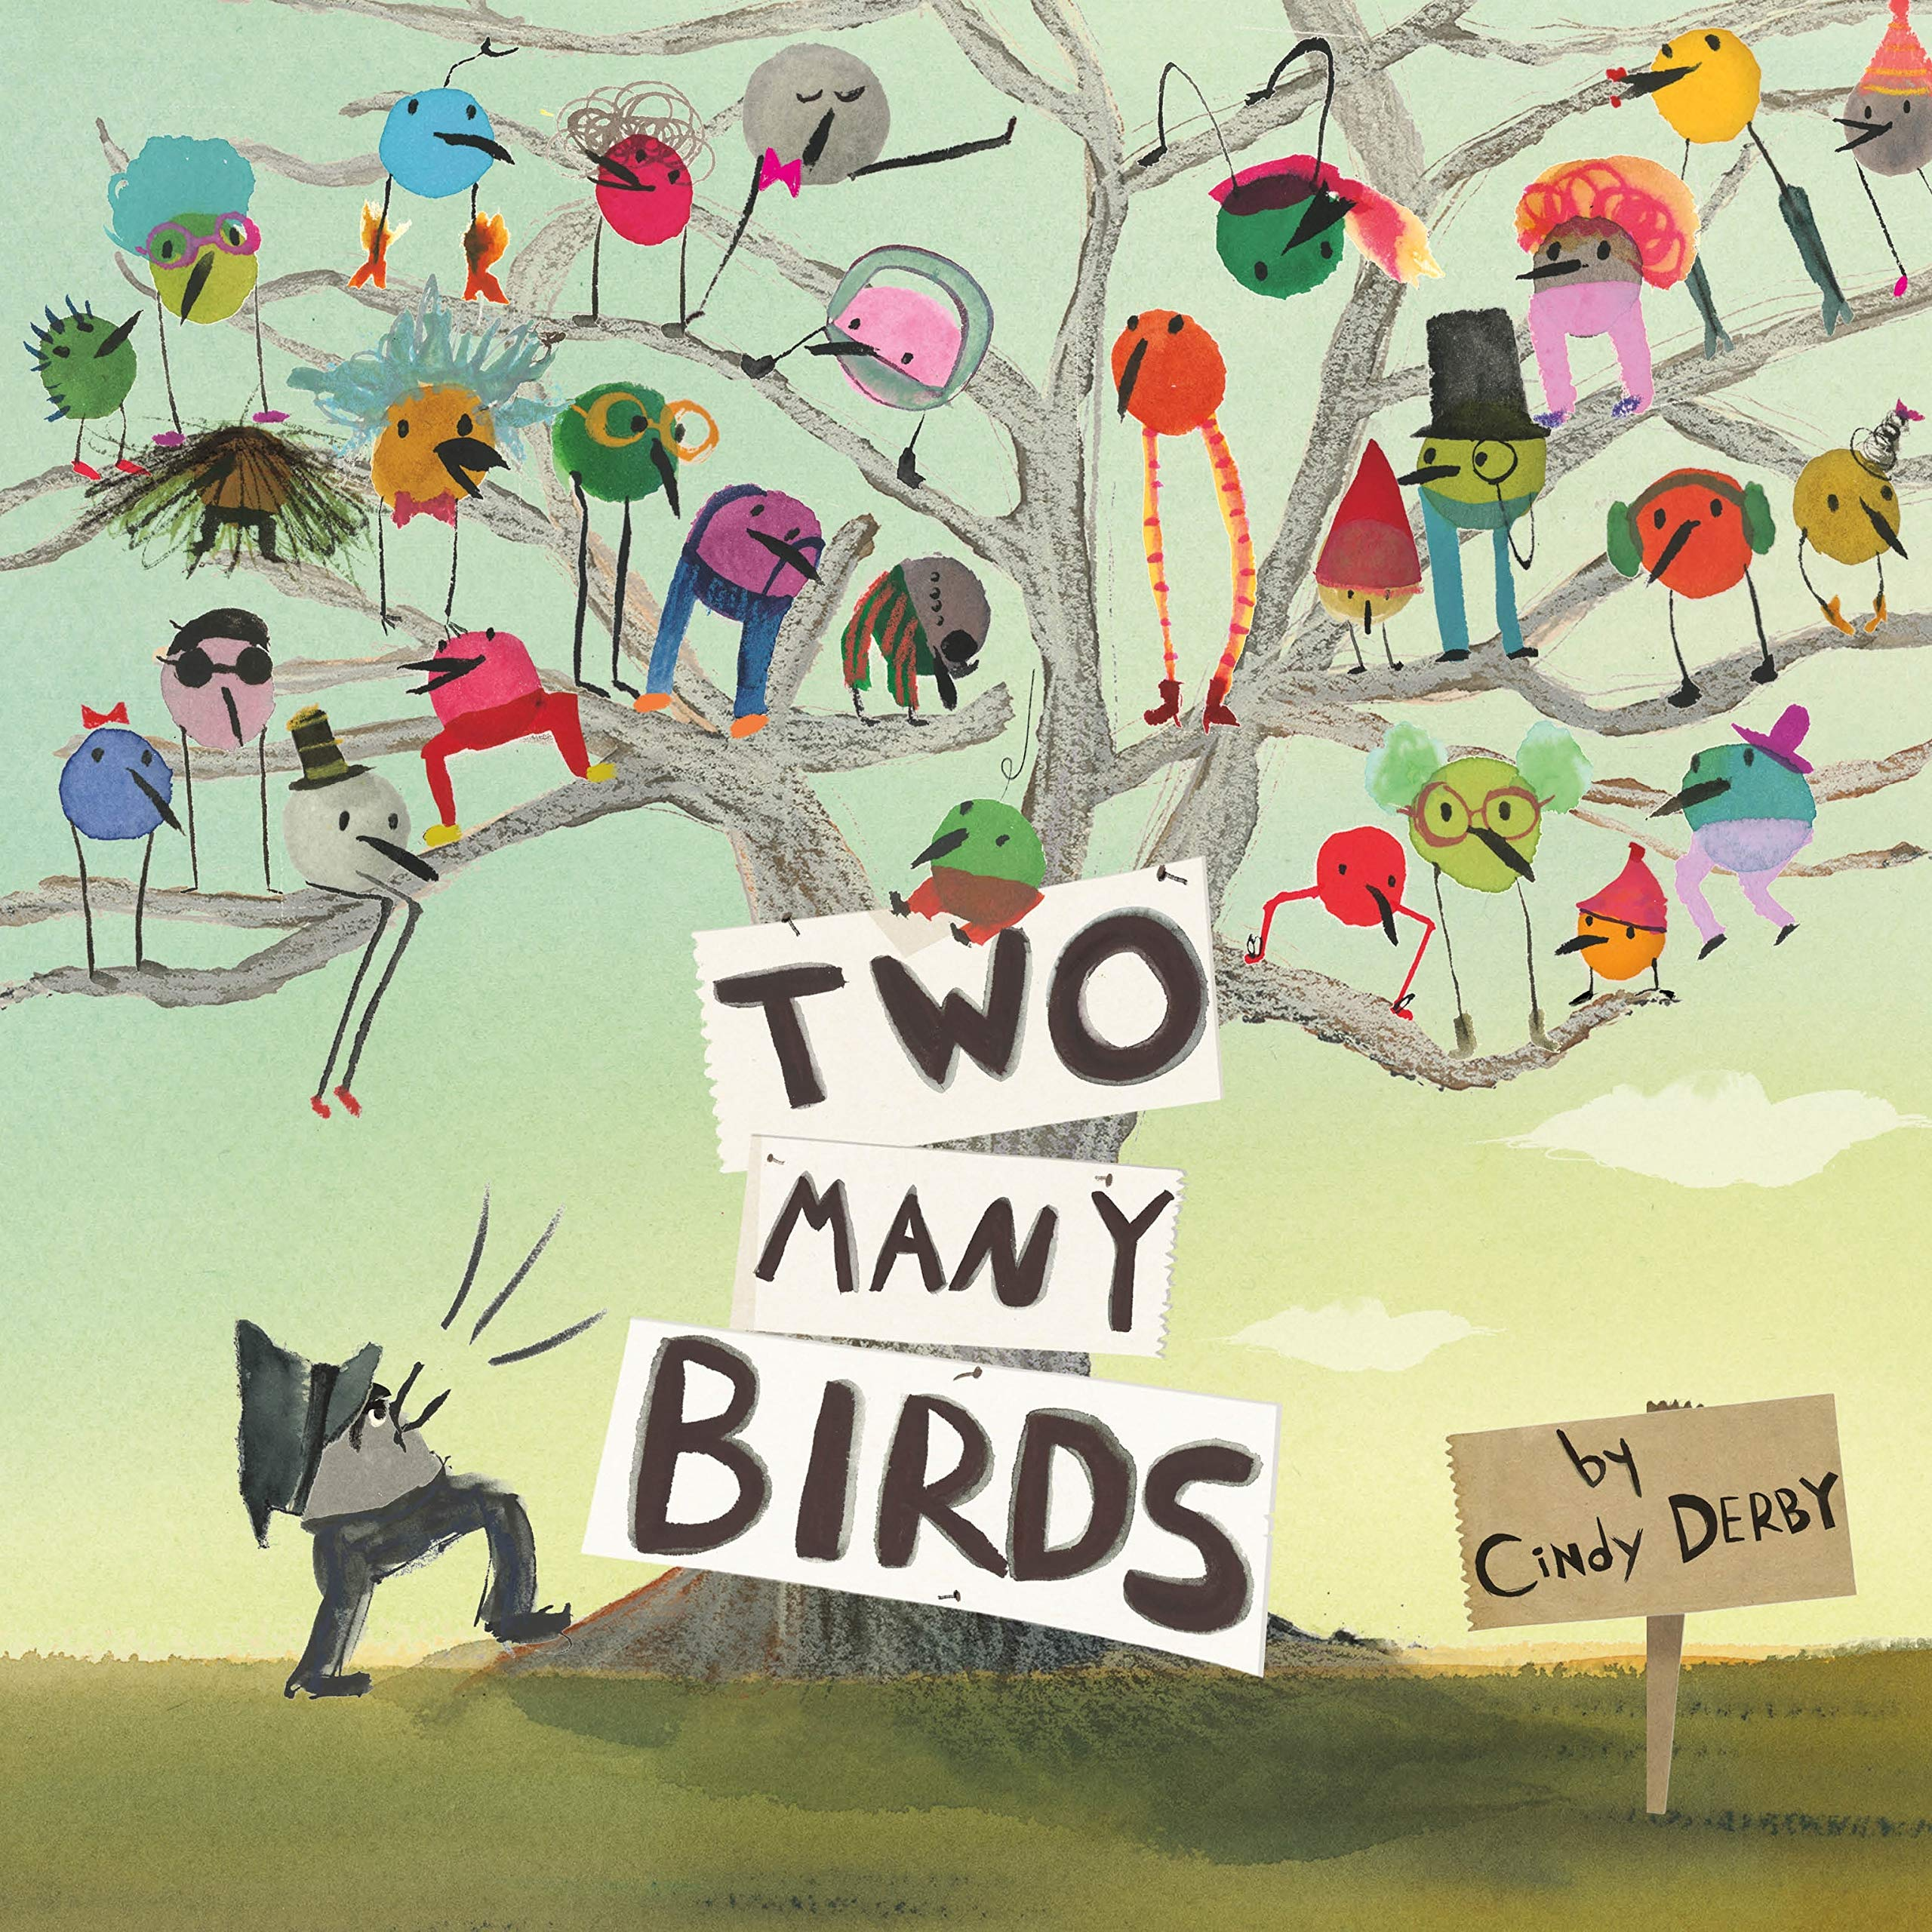 Amazon.com: Two Many Birds (9781250232540): Derby, Cindy, Derby, Cindy:  Books